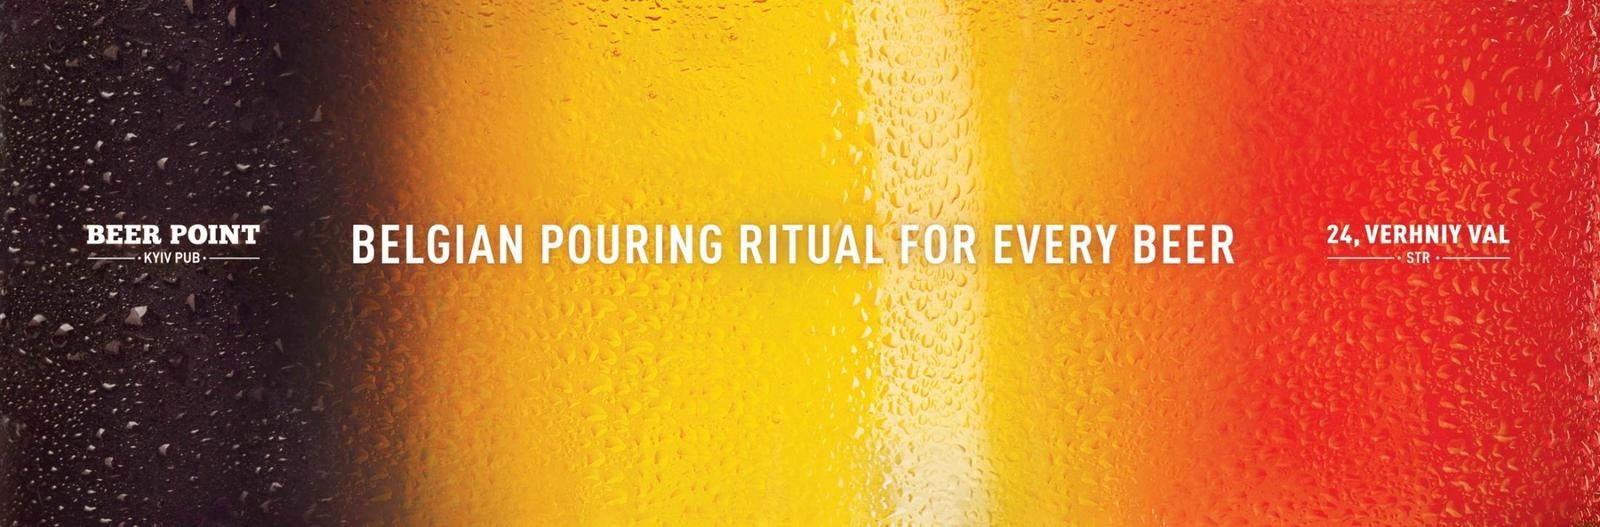 """Beer Point : """"Belgian pouring ritual for every beer"""" (pub) I Agence : Kinograf, Kiev, Ukraine (avril 2019)"""